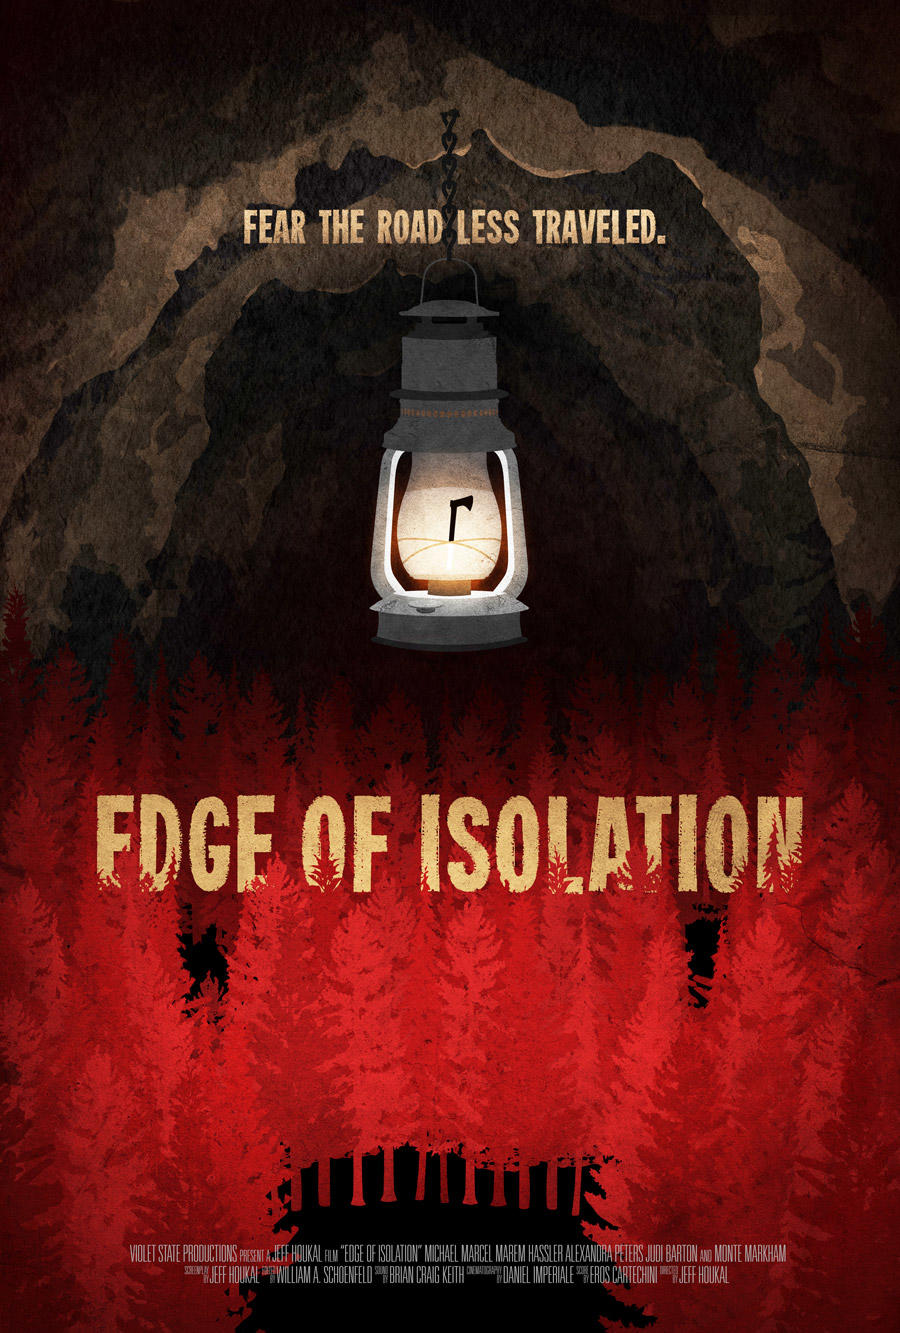 Edge of Isolation poster art